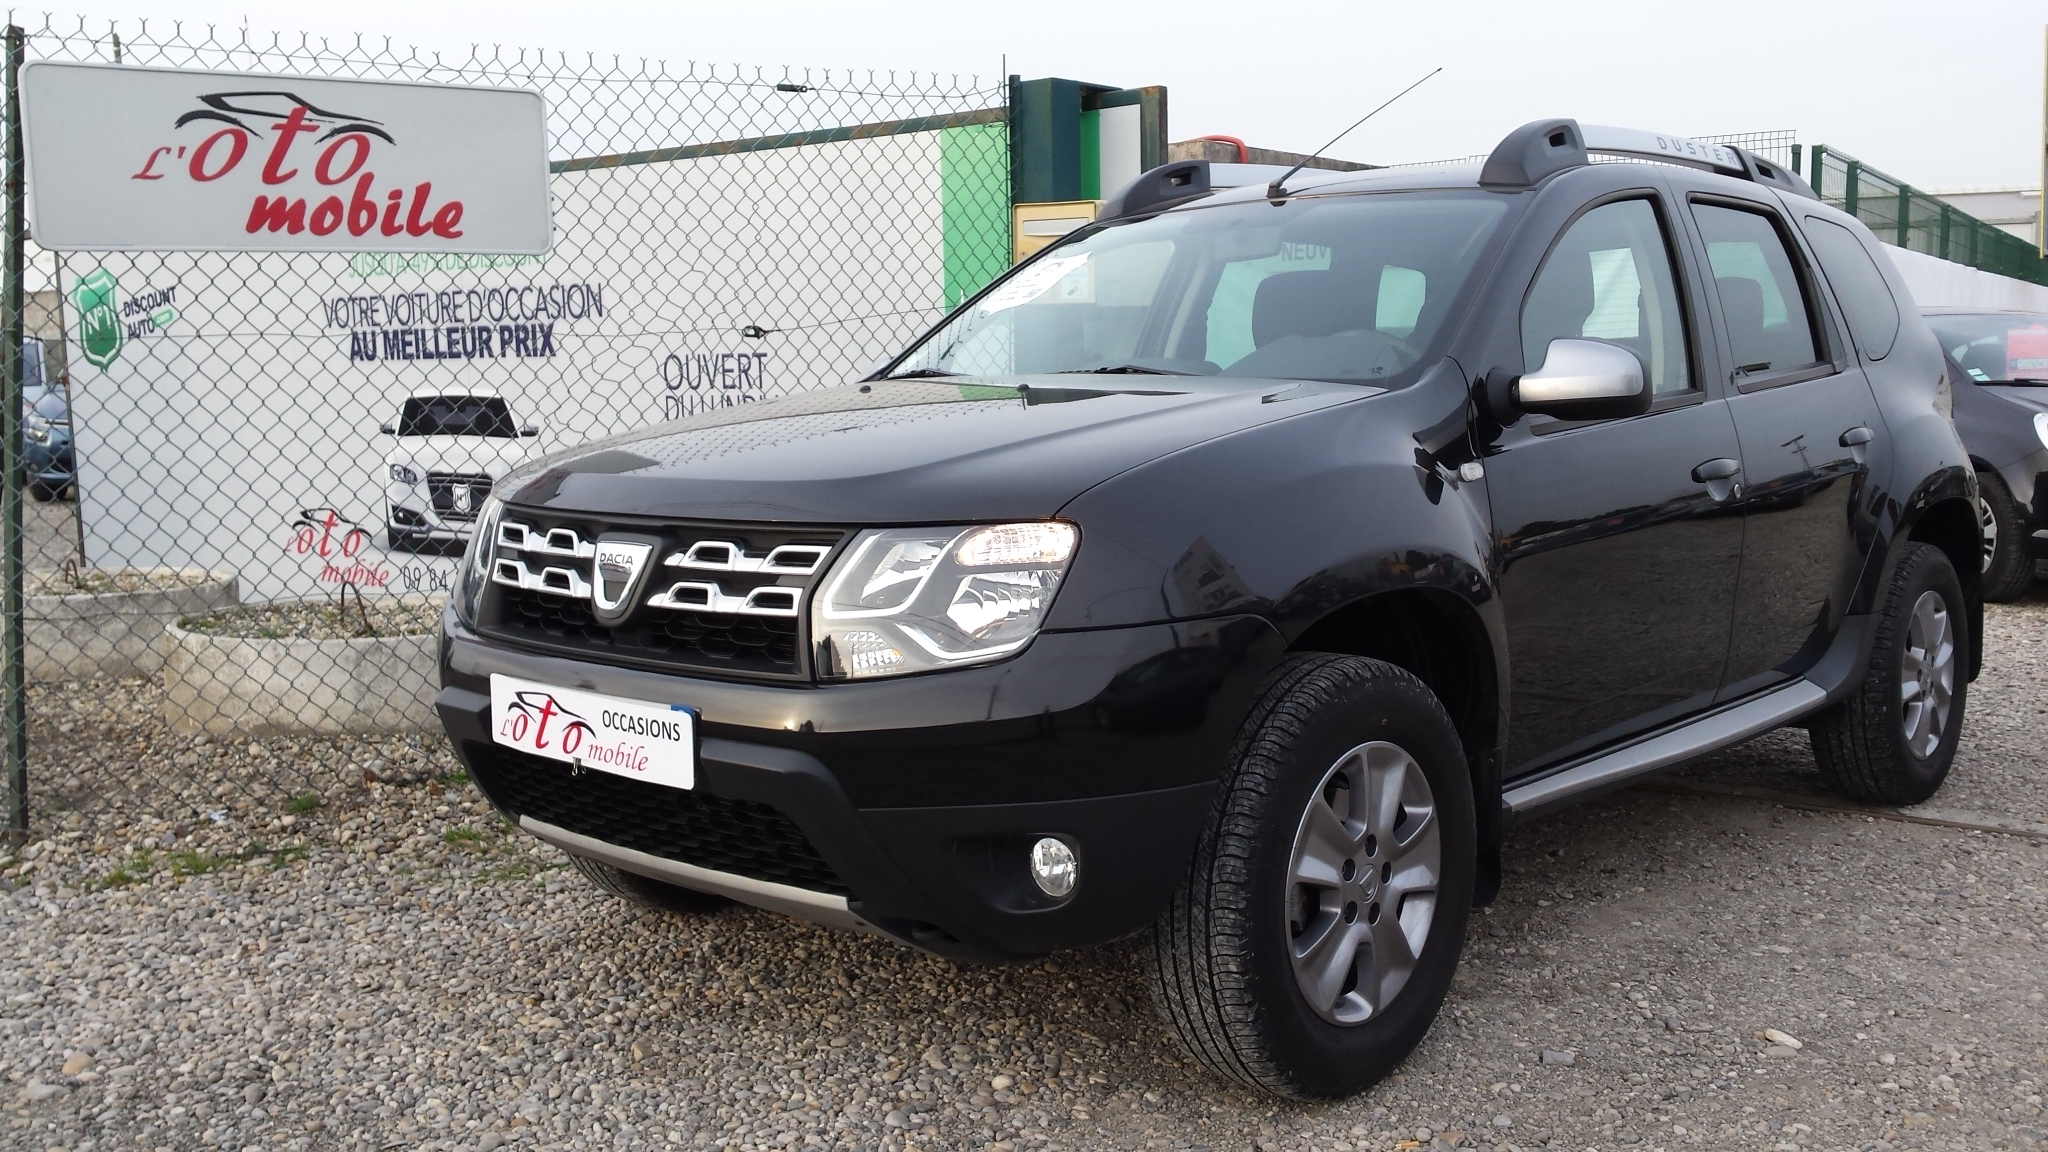 voiture dacia duster prestige 1 5 dci 110 4x4 gps occasion. Black Bedroom Furniture Sets. Home Design Ideas